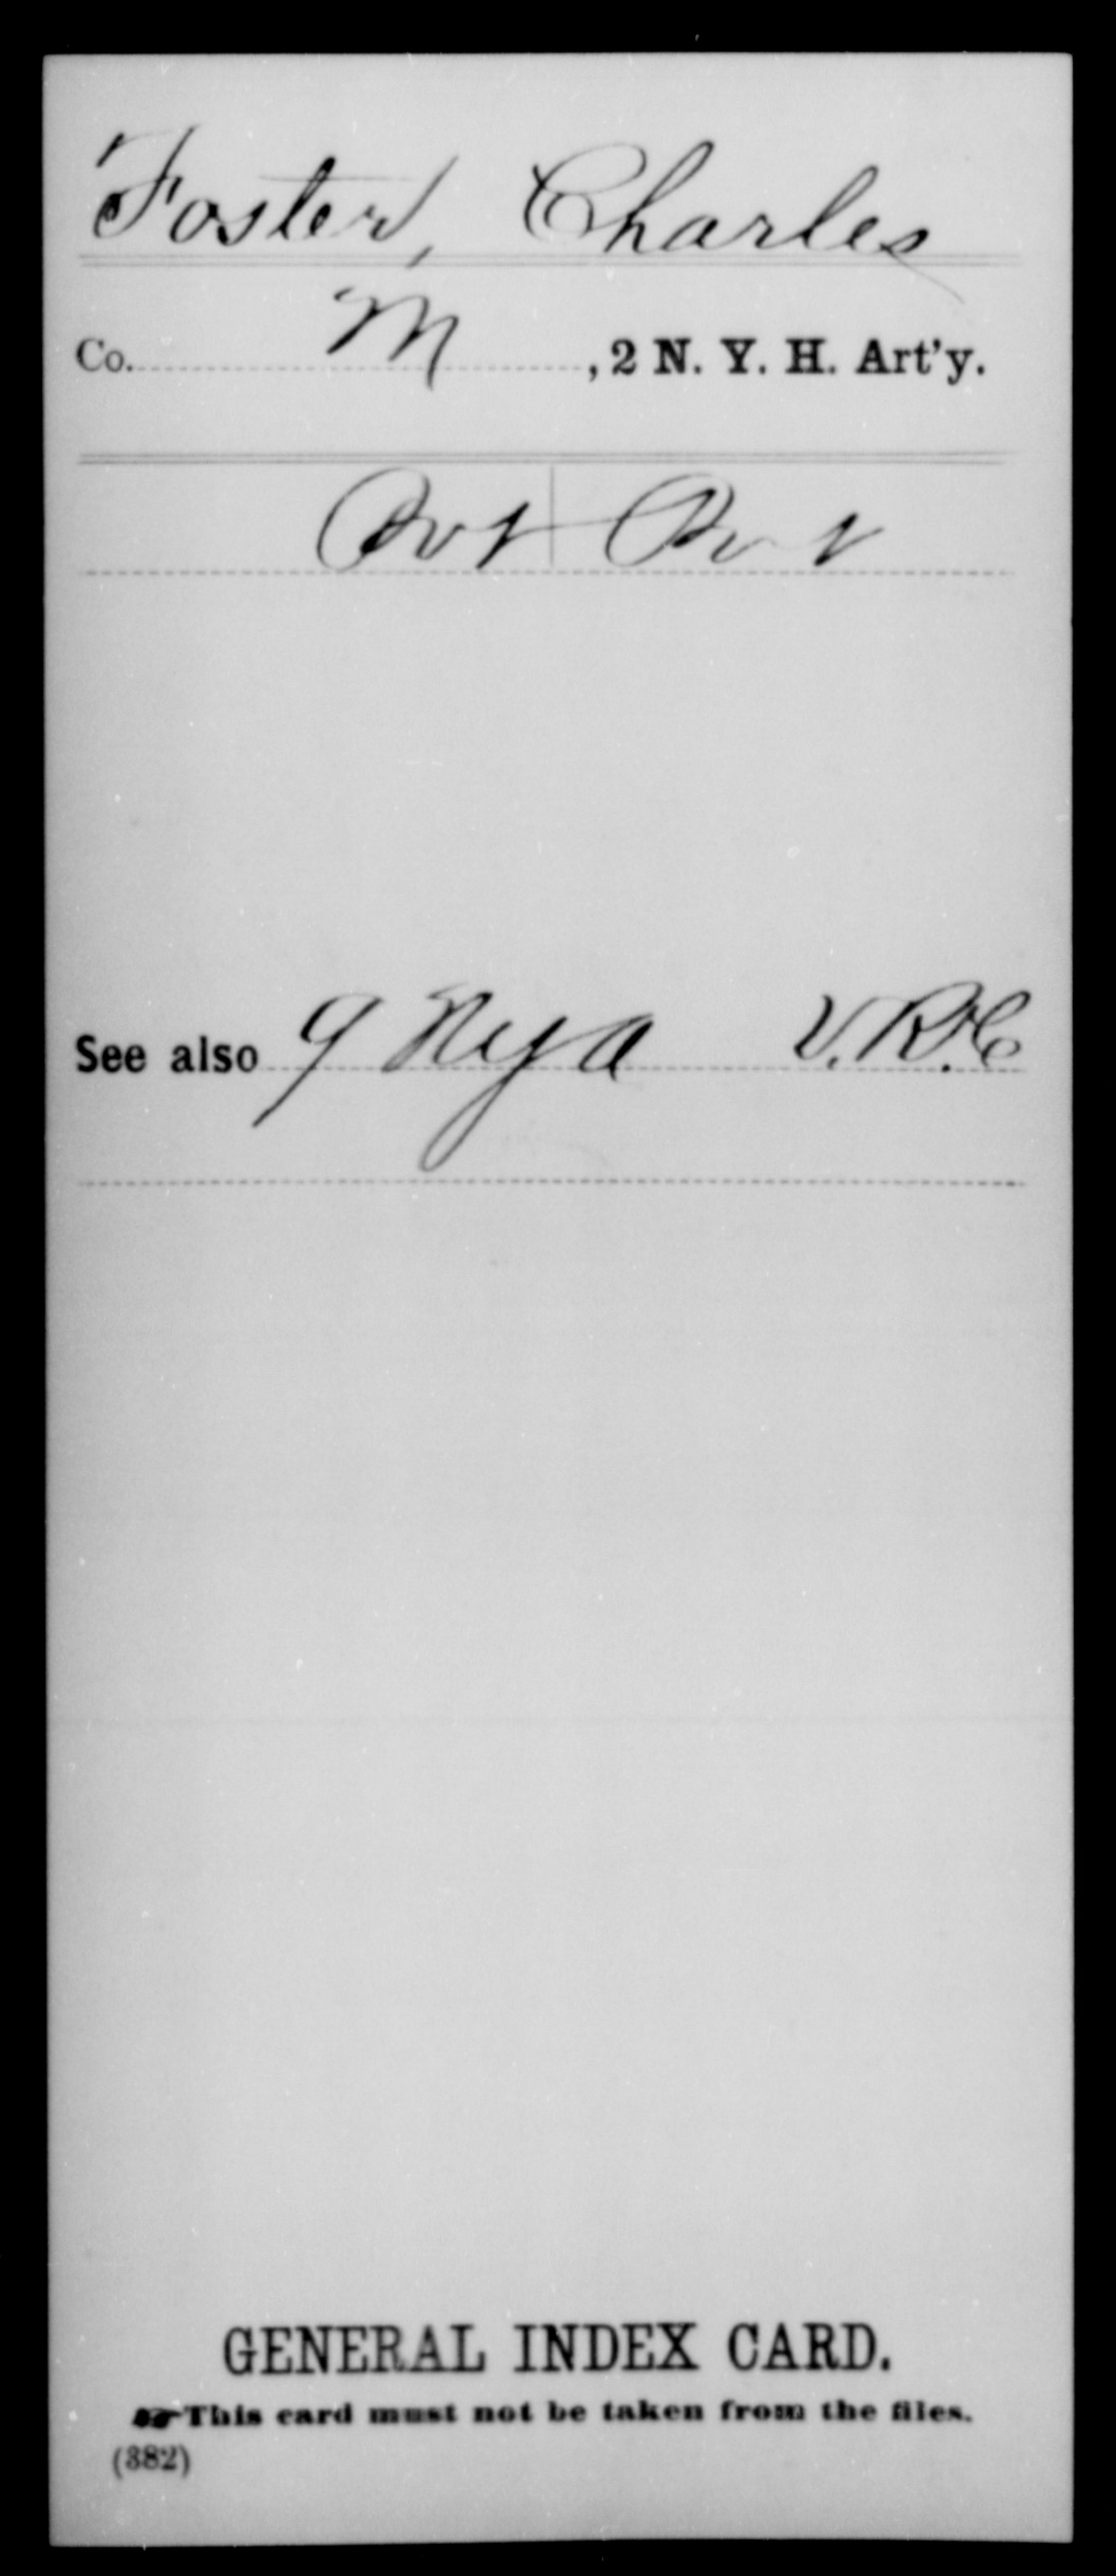 [New York] Foster, Charles - Unit: 2nd Heavy Artillery, Company: M - Enlistment Rank: Pvt, Discharge Rank: Pvt